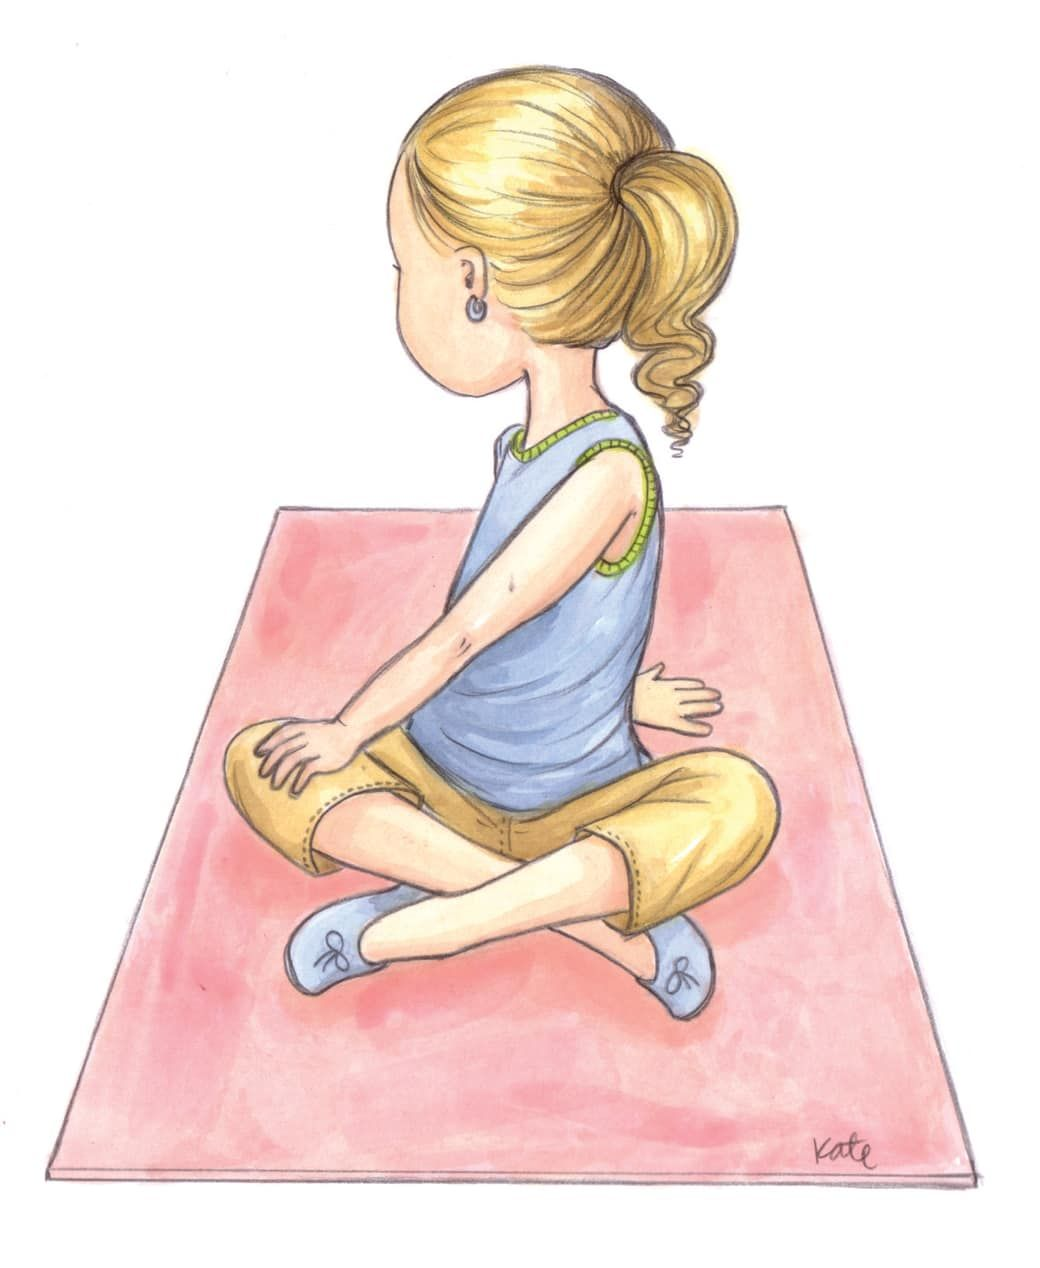 12 Kid Friendly Yoga Poses To Focus And Destress